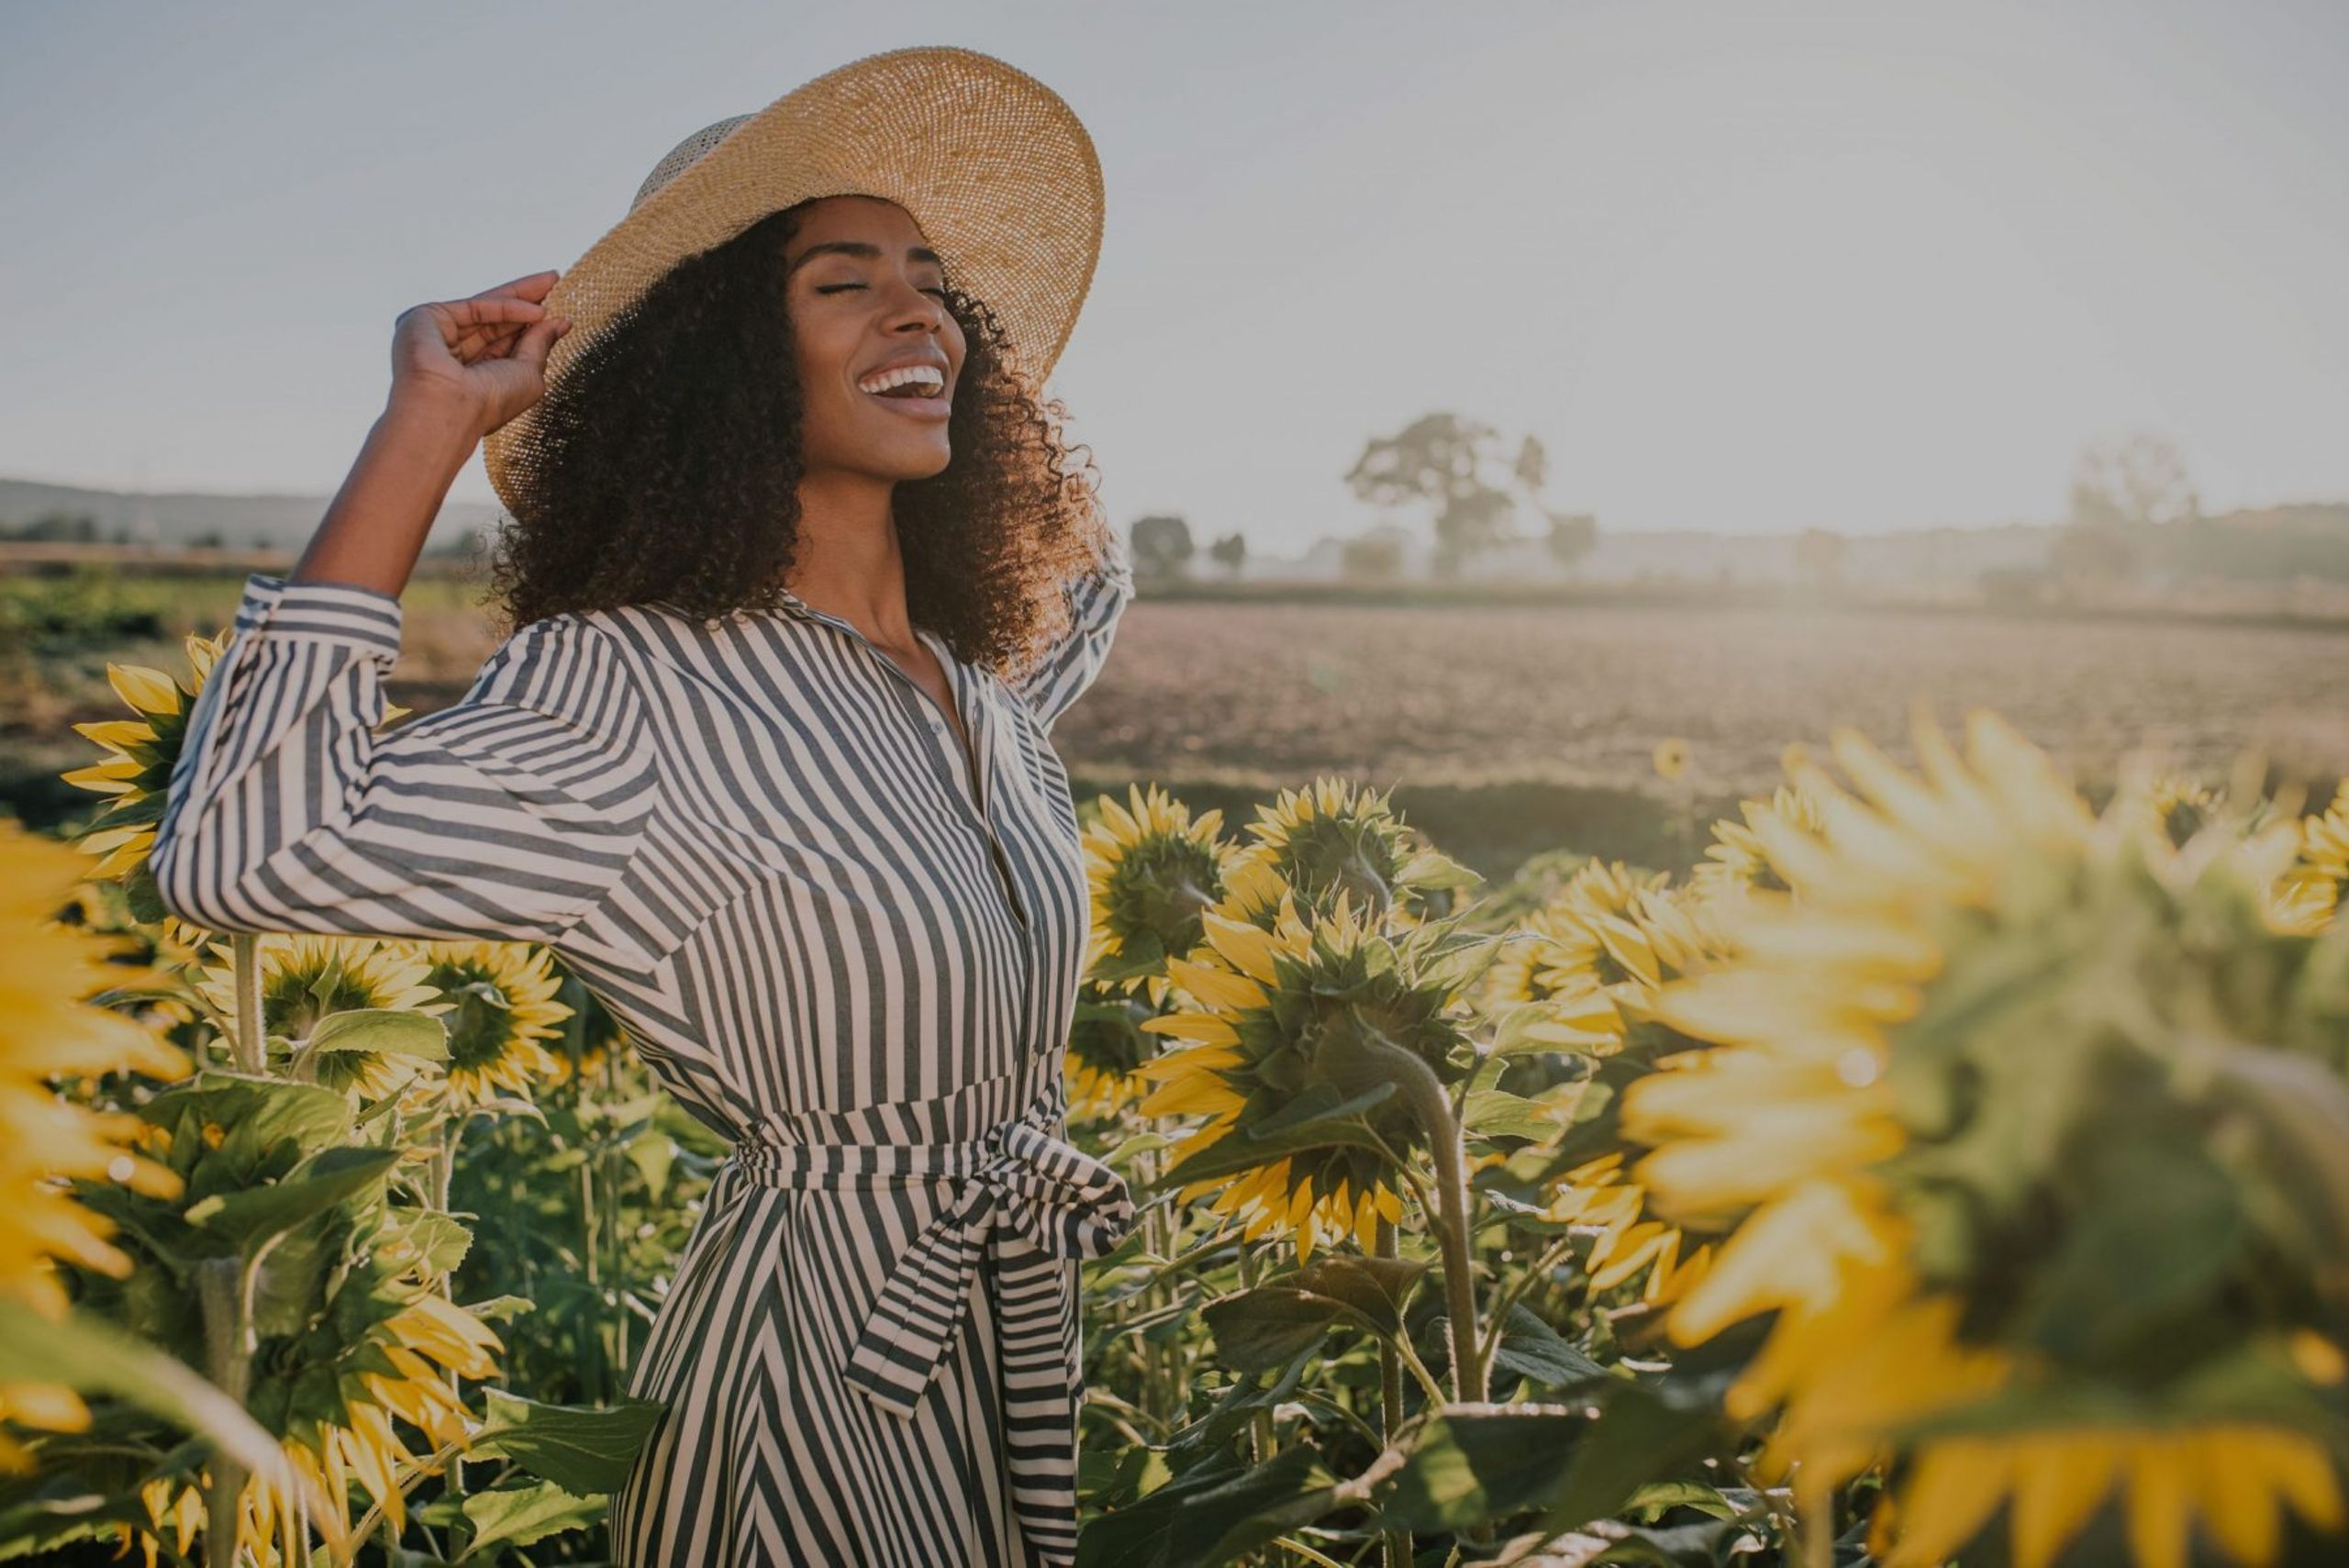 A woman is smiling and laughing while she is in a sunflower field.